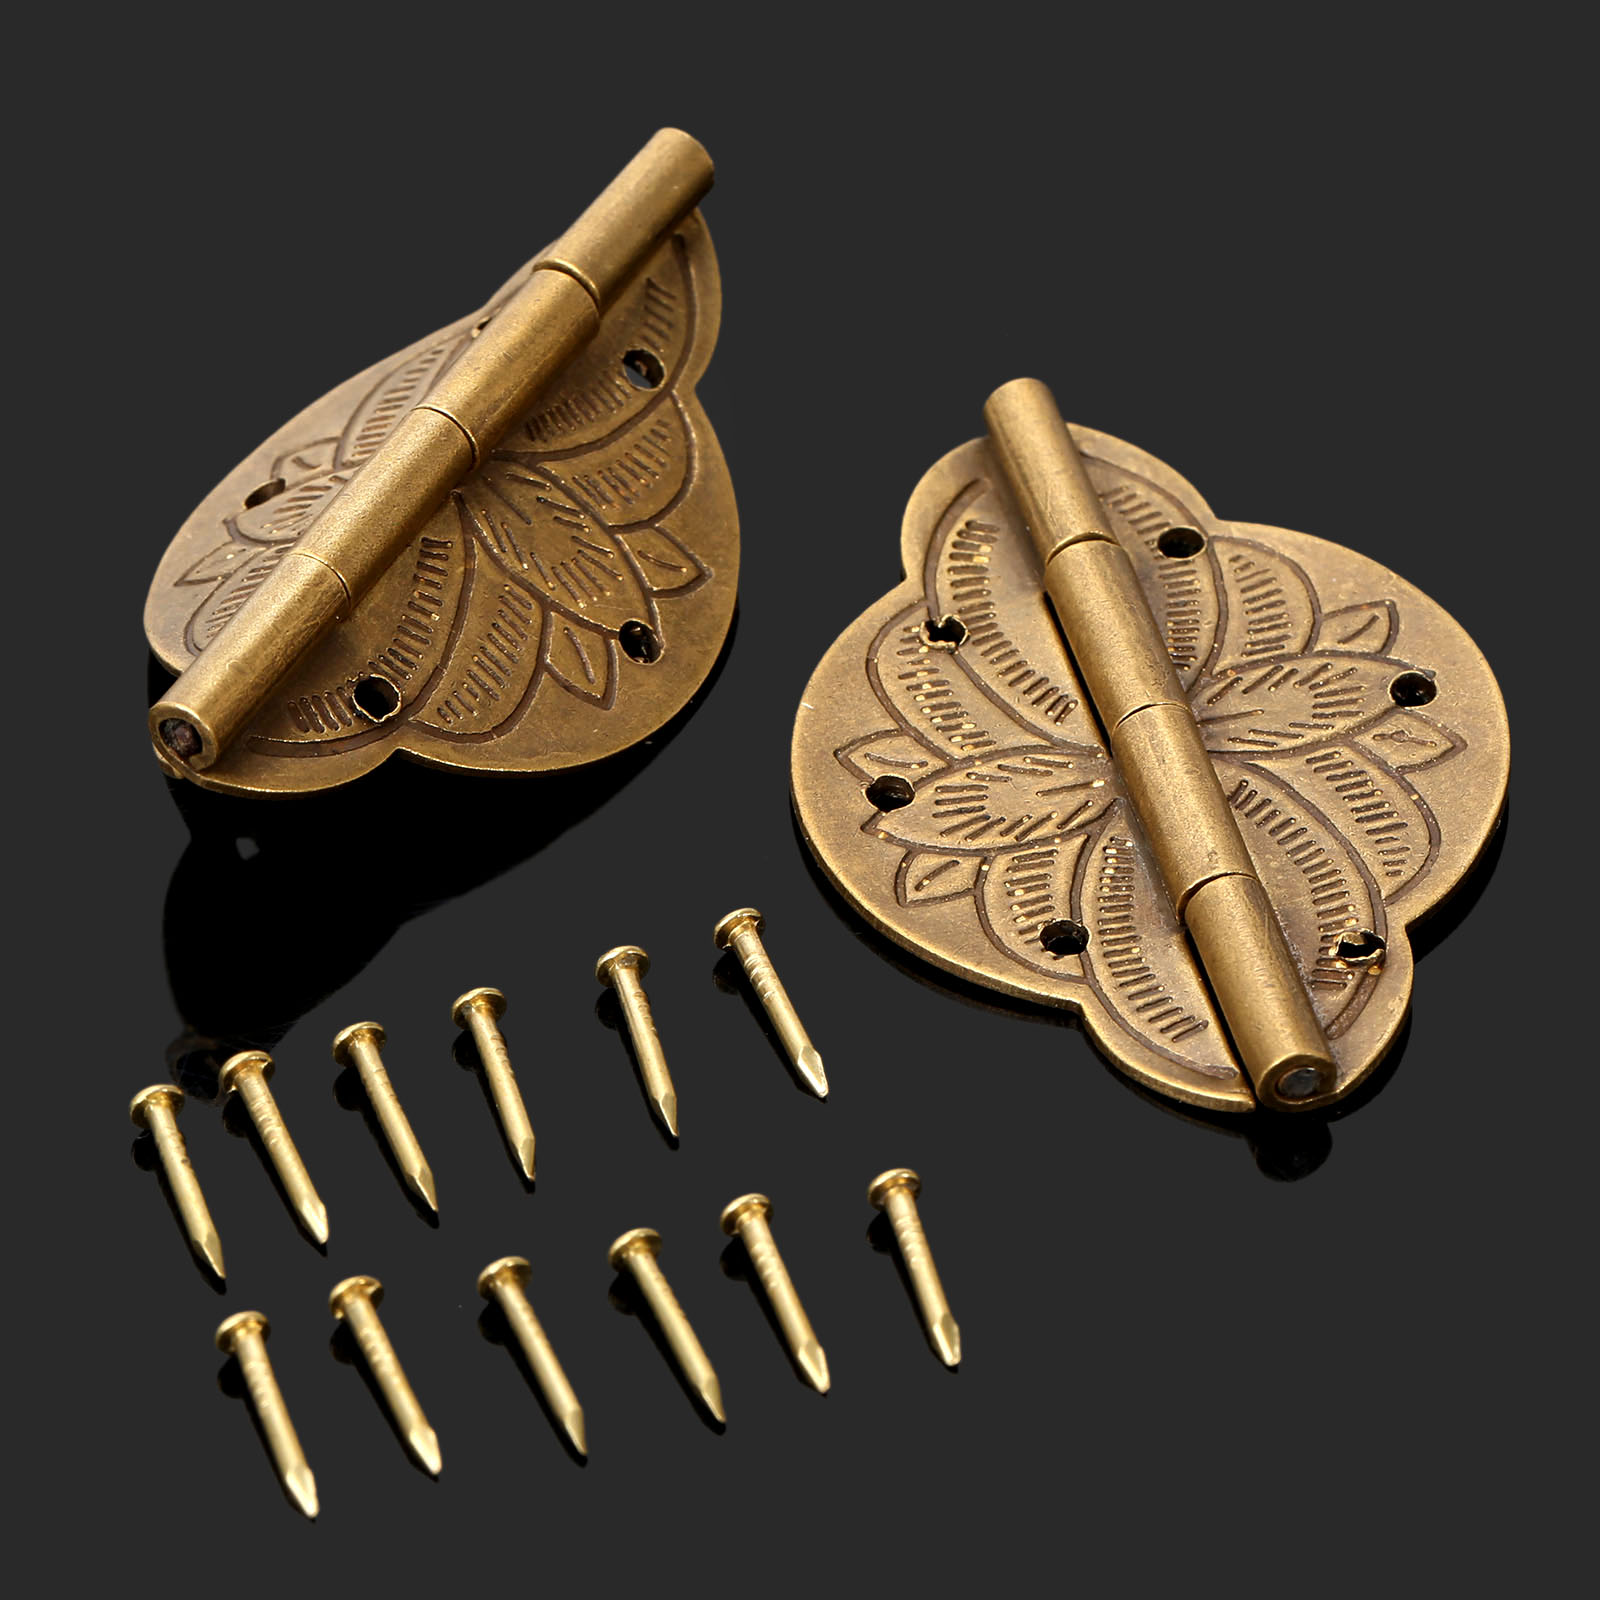 2Pcs Brass Plated Mini Hinge Antique Bronze Decorative Jewelry Wooden Box Cabinet Door Hinges+Nail Furniture Accessories 43x31mm 10pcs cabinet door butt hinges mini drawer bronze decorative mini hinges diy accessories small wooden box decoration